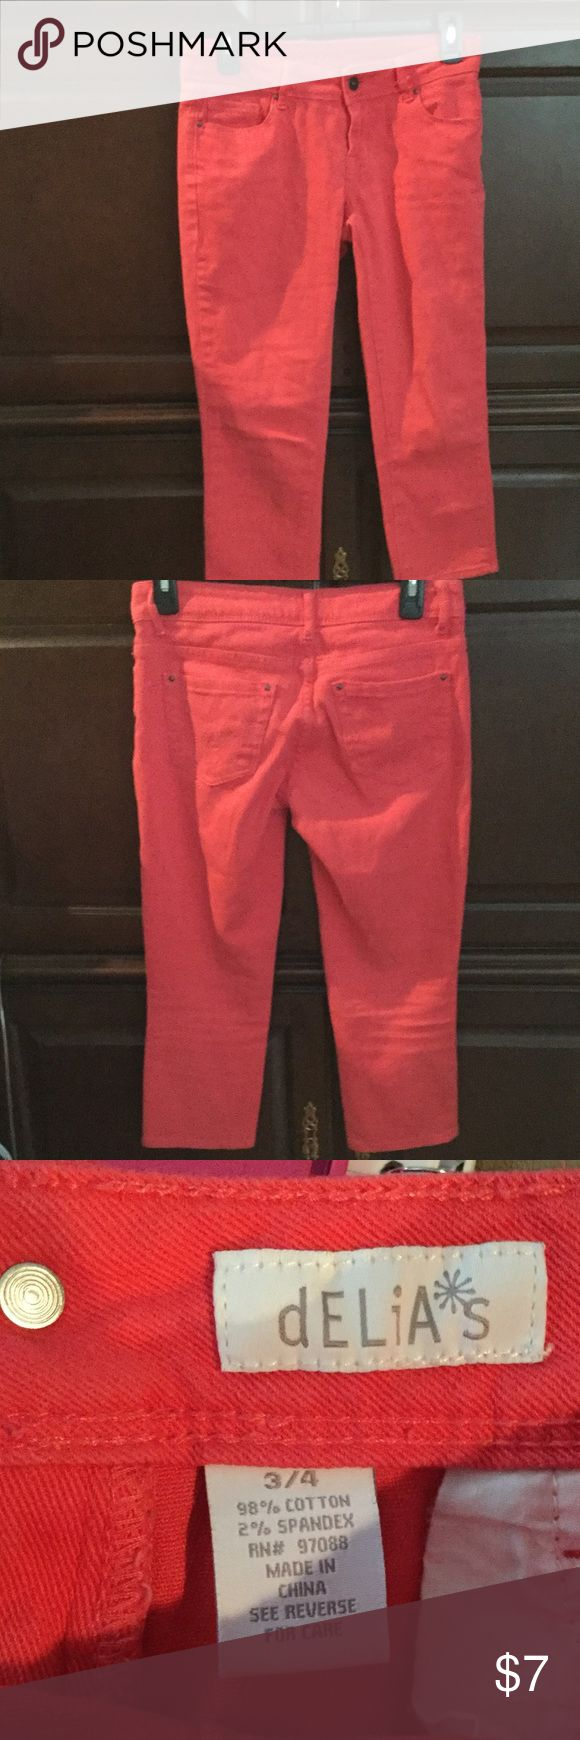 Coral Capris in great condition. Delia's coral stretch denim.    Great capris to get ready for spring. delia,s Pants Capris